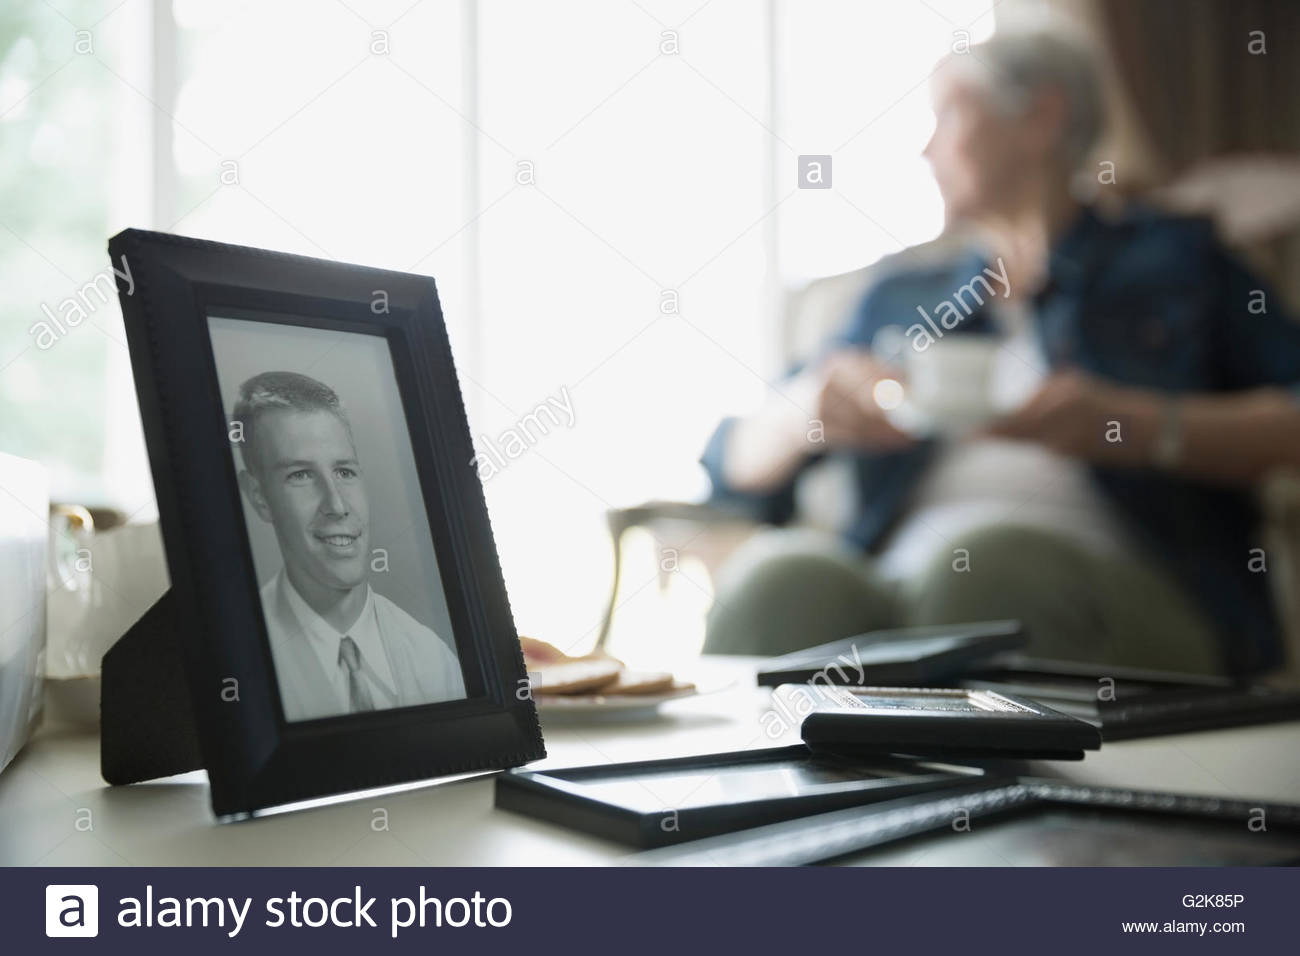 Old photograph of man with senior woman in background - Stock Image